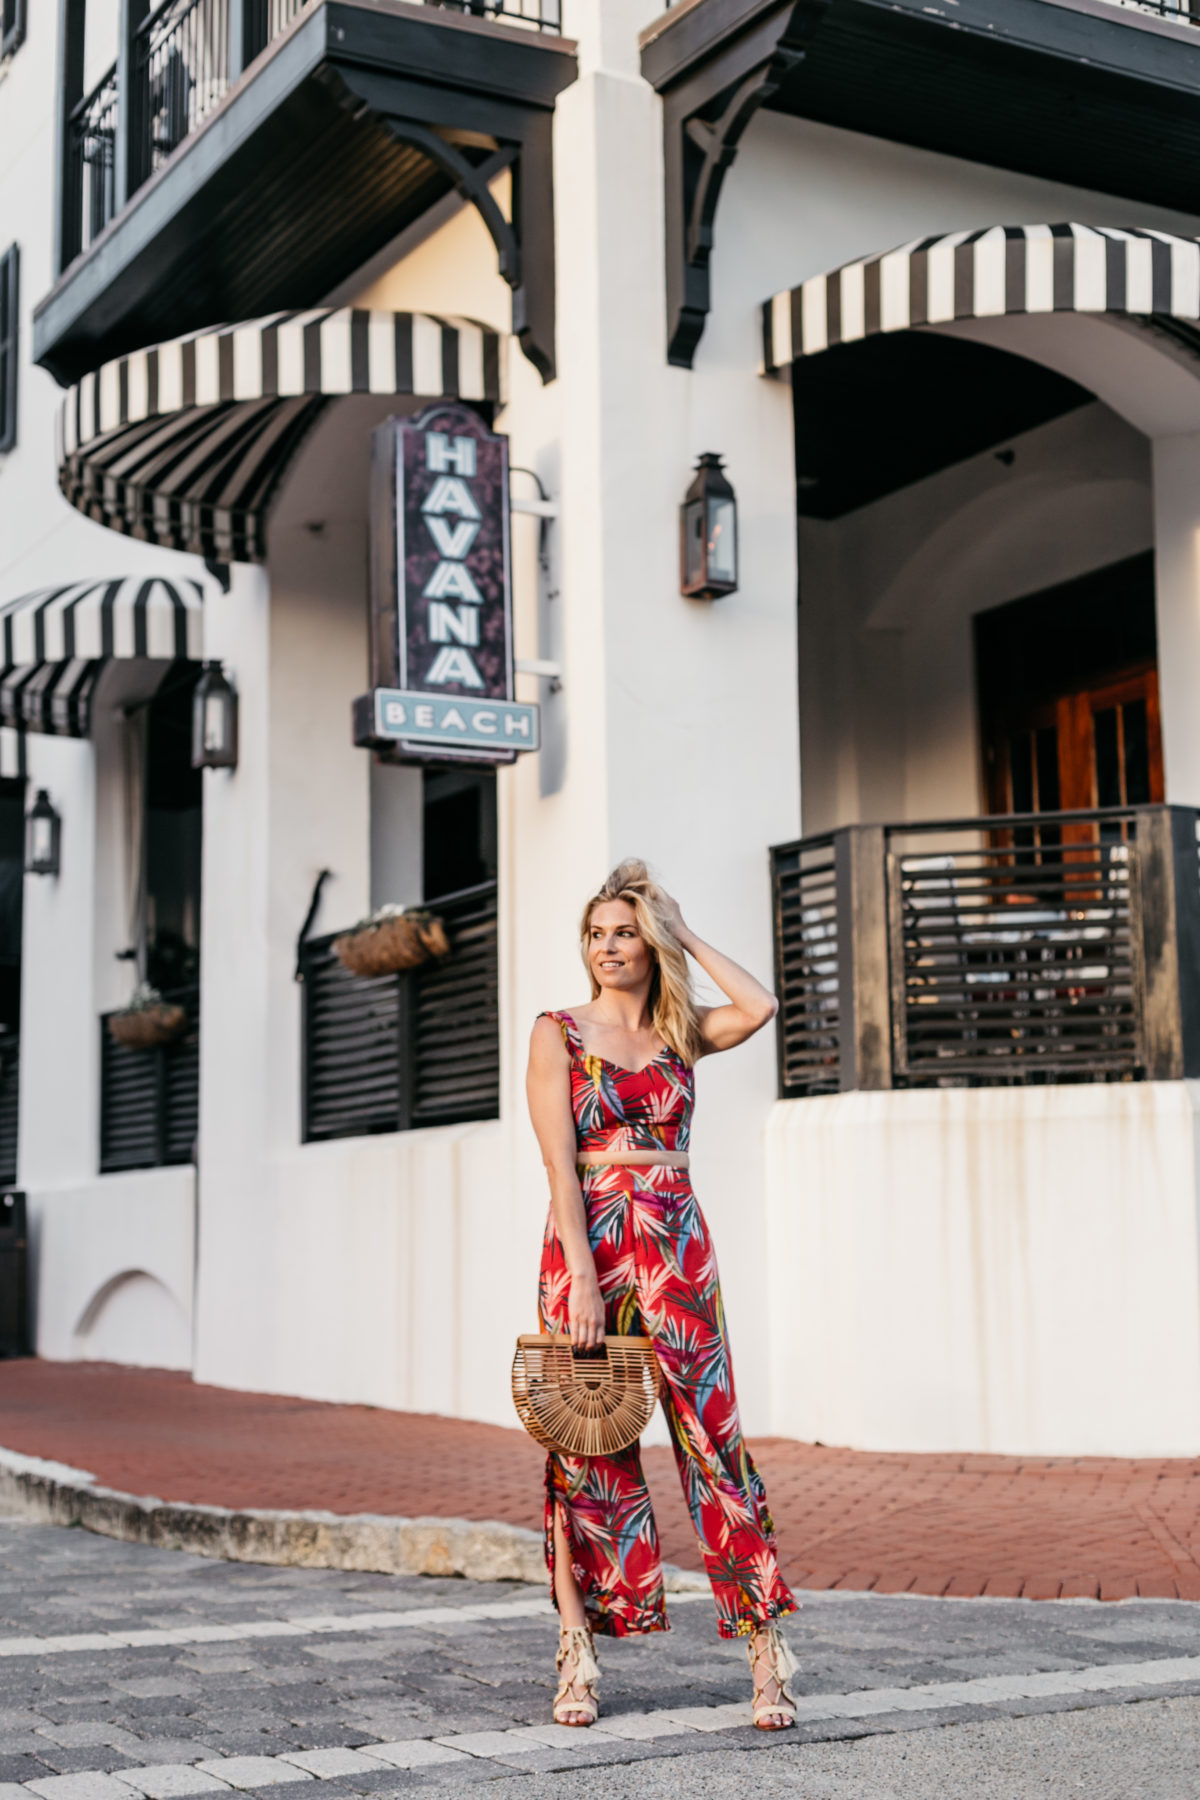 Brooke Burnett Outfit Details: Tropical Print Pants // Tropical Print Top // Strappy Sandals // Wooden Bag